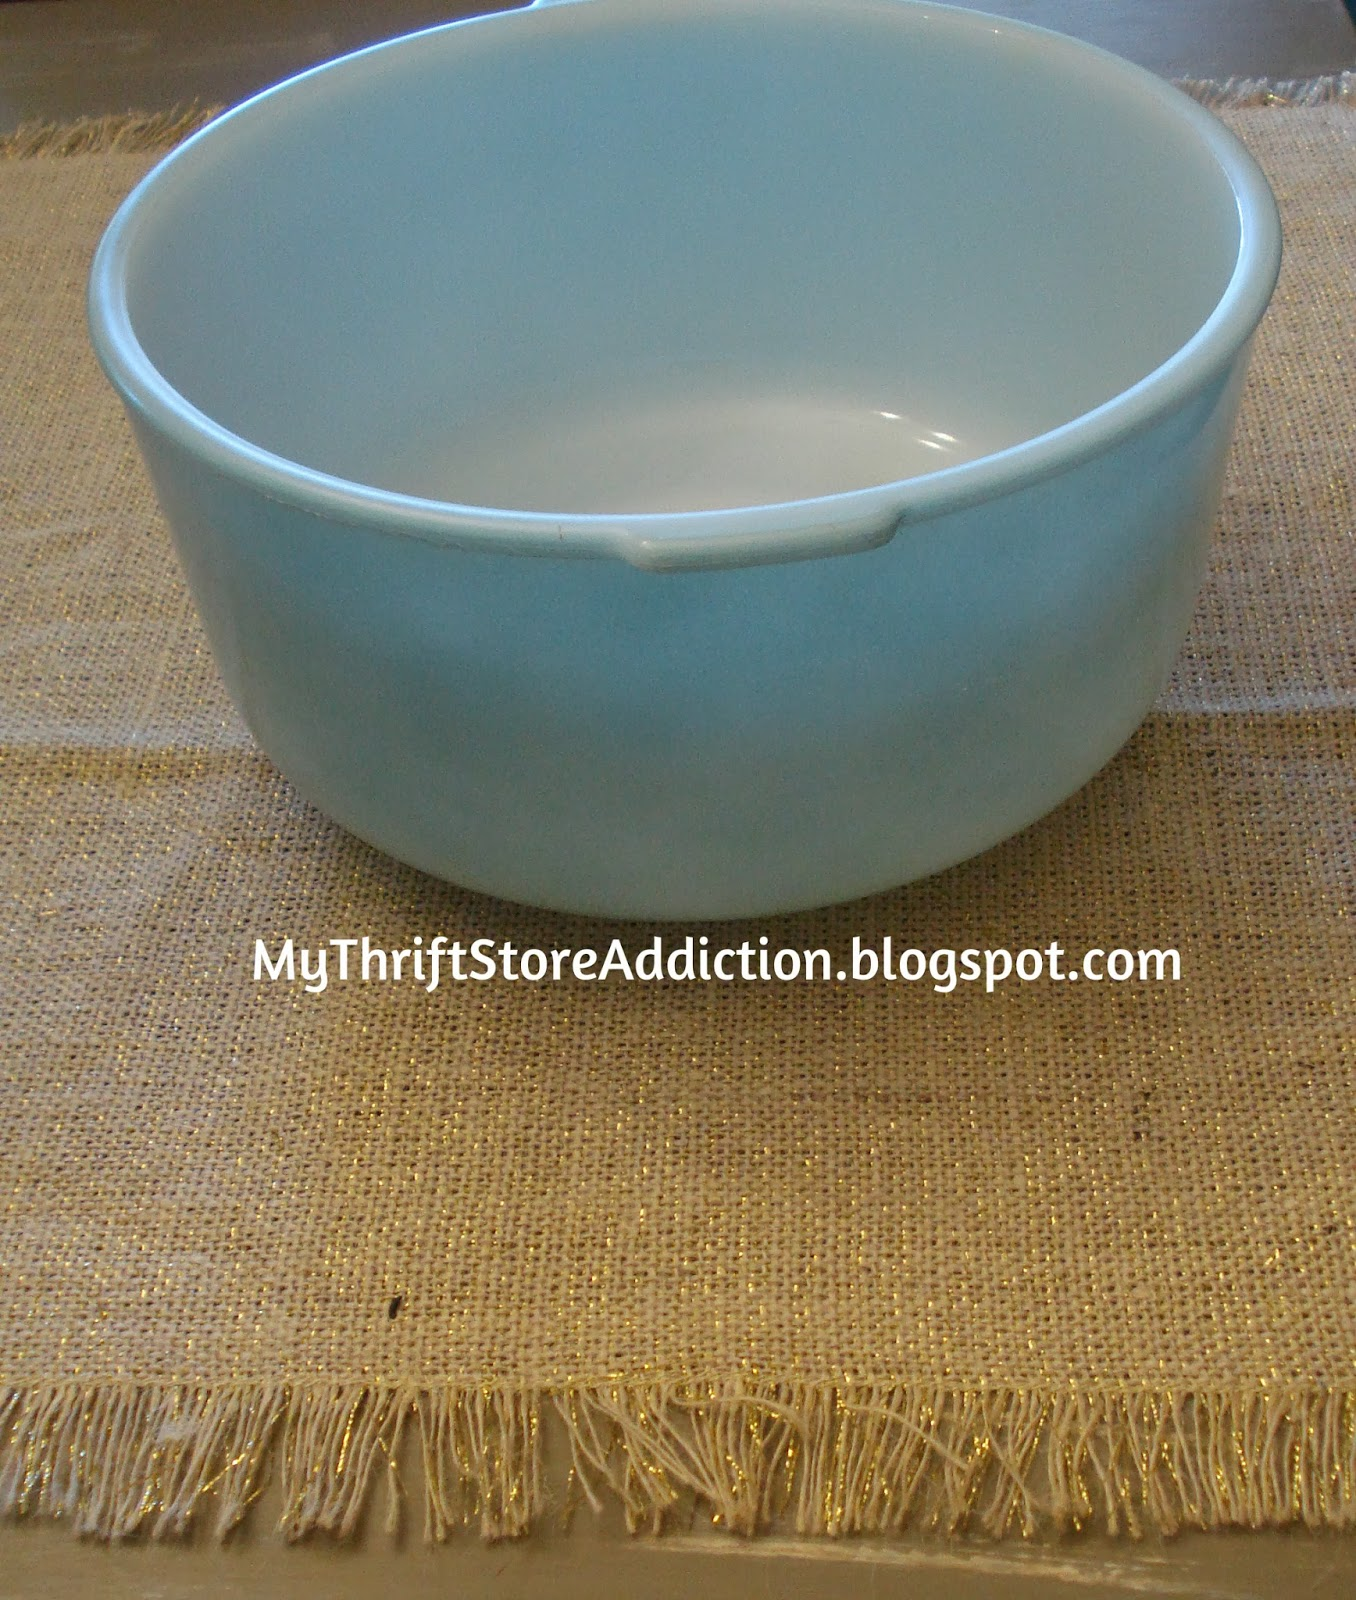 My Thrift Store Addiction : Friday's Find: Vintage Mixing Bowl